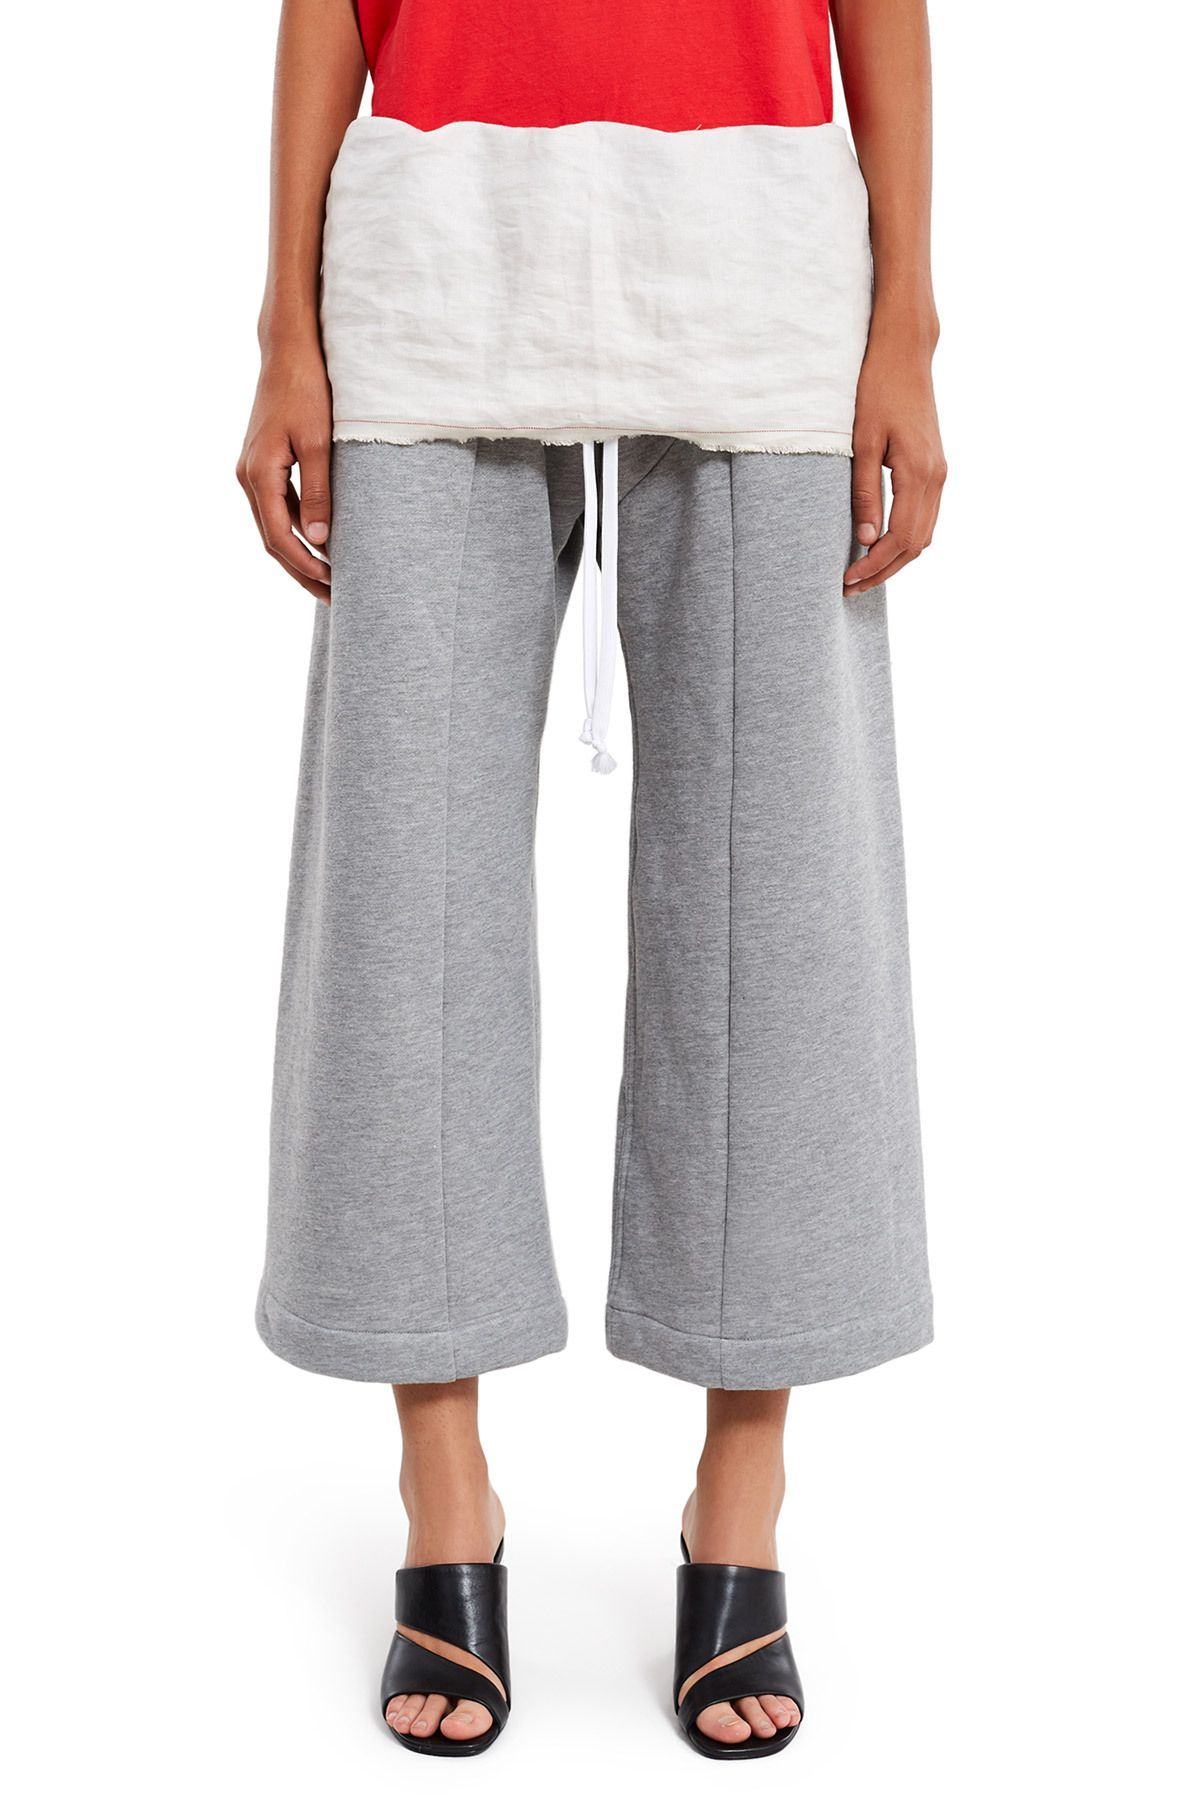 :Asymmetrical fly:Elasticated drawstring waistband:Linen waist panel with printed garment instructions:Side pockets:Wide-leg, cropped style:100% cotton; 100% linen:Imported